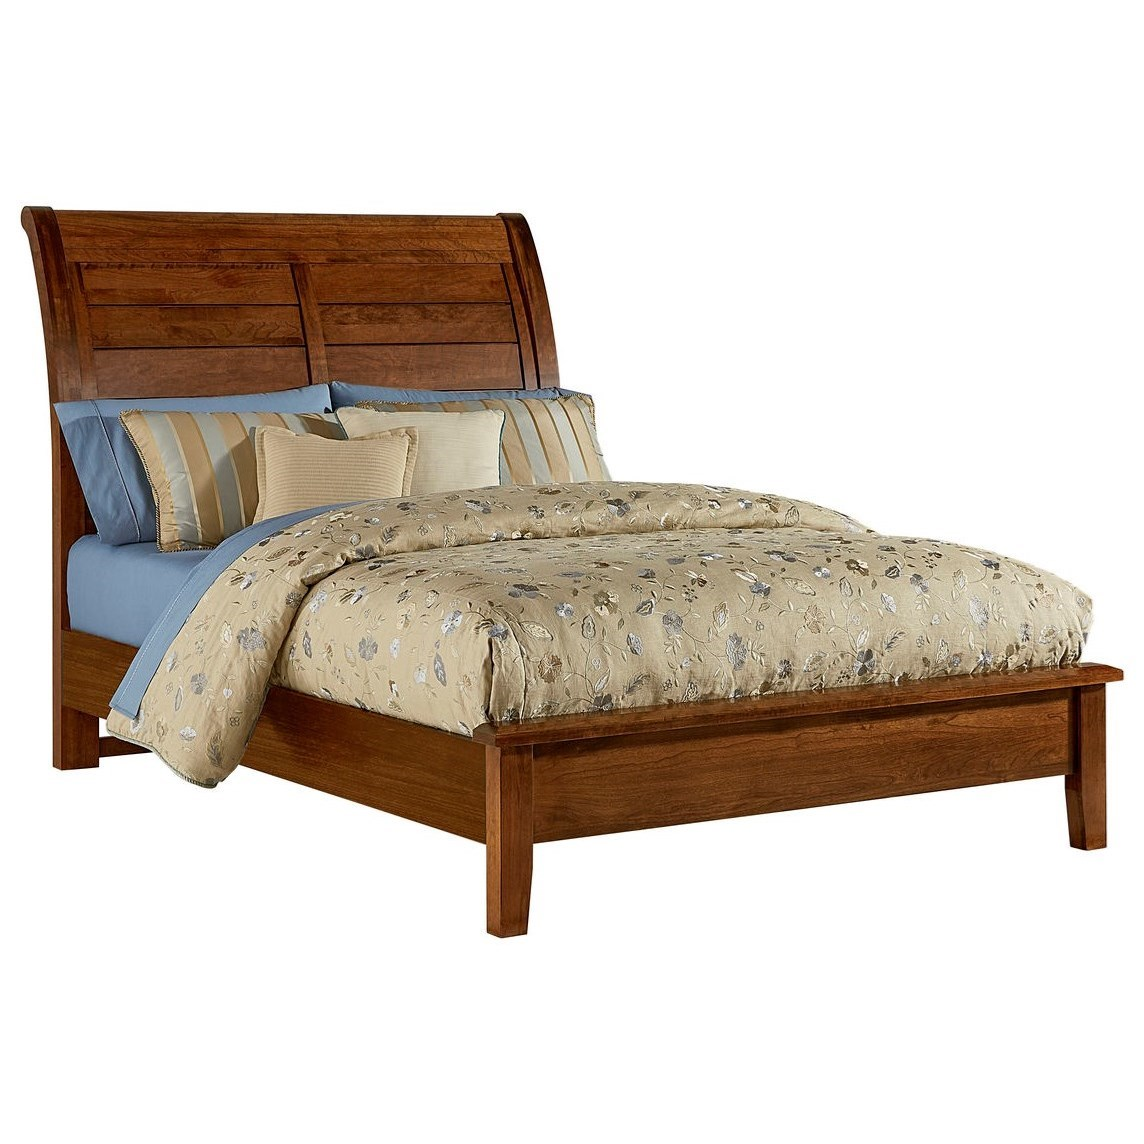 Artisan Choices King Sleigh Bed with Low Profile Footboard by Artisan & Post at Lapeer Furniture & Mattress Center